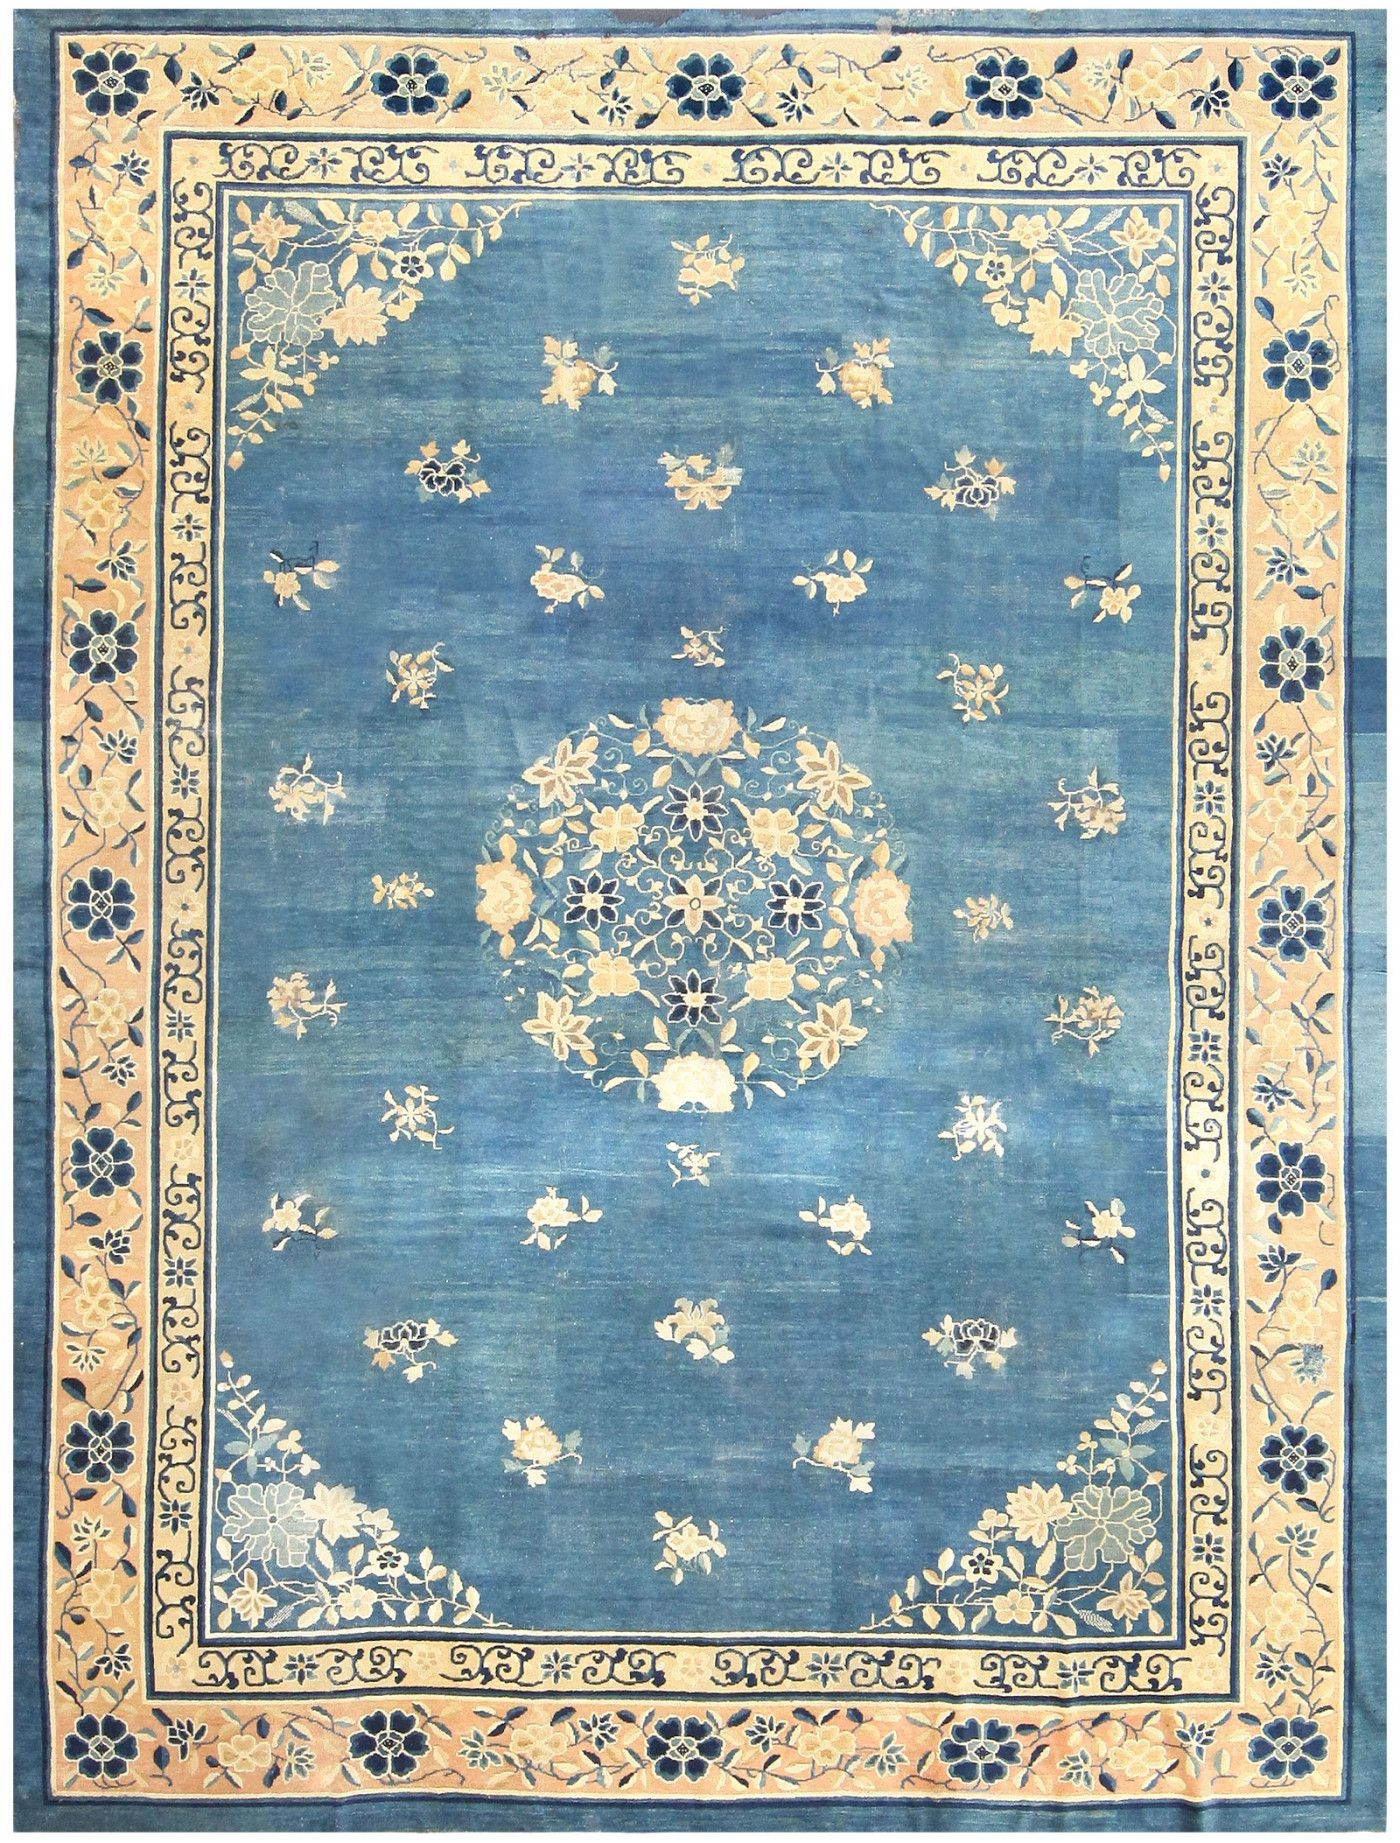 Antique Blue Chinese Rug 50148 Nazmiyal Collection Inside Chinese Rugs (Image 1 of 15)